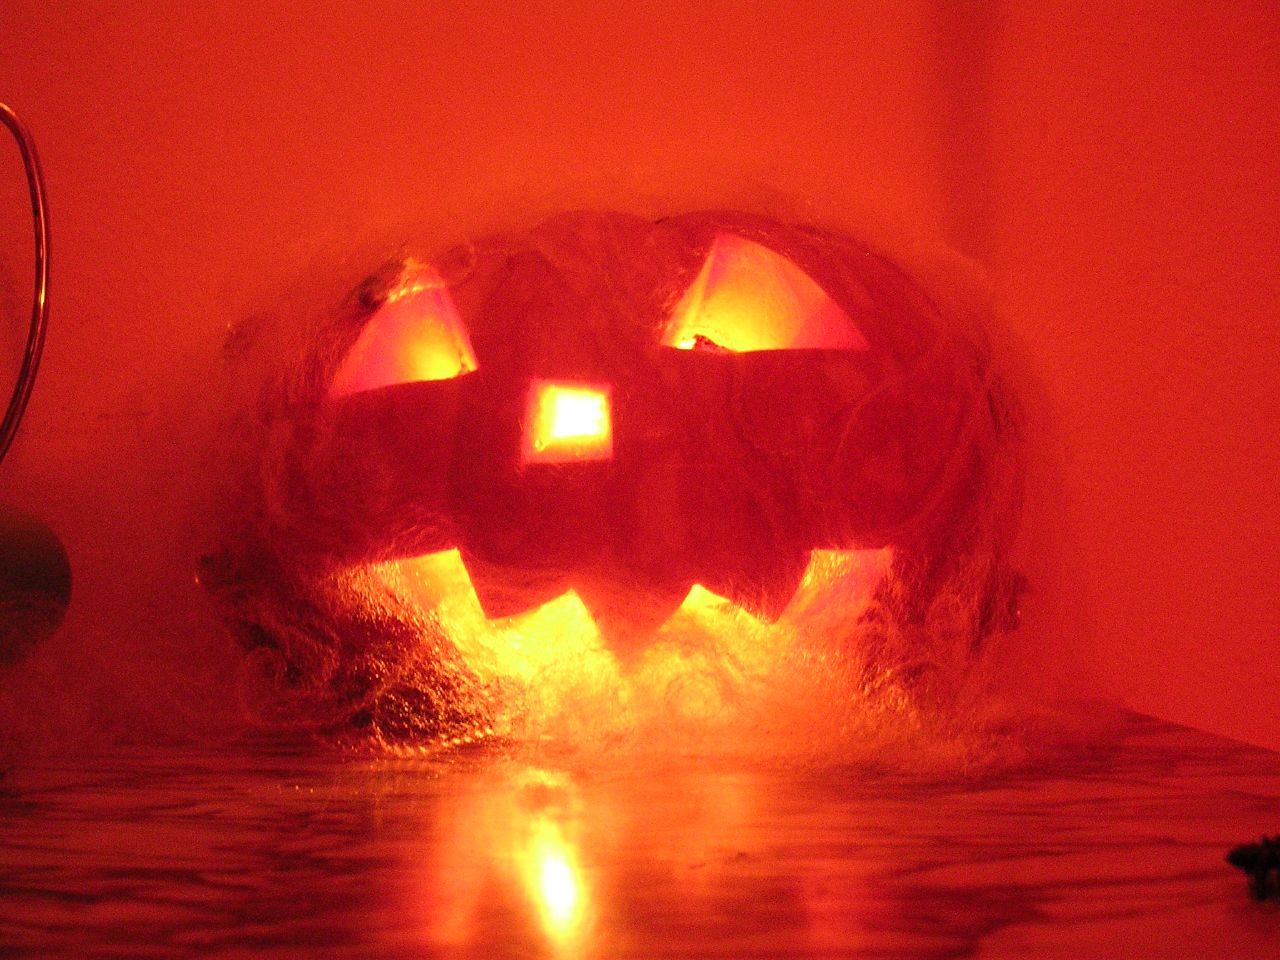 Burning Pumpkin, Halloween